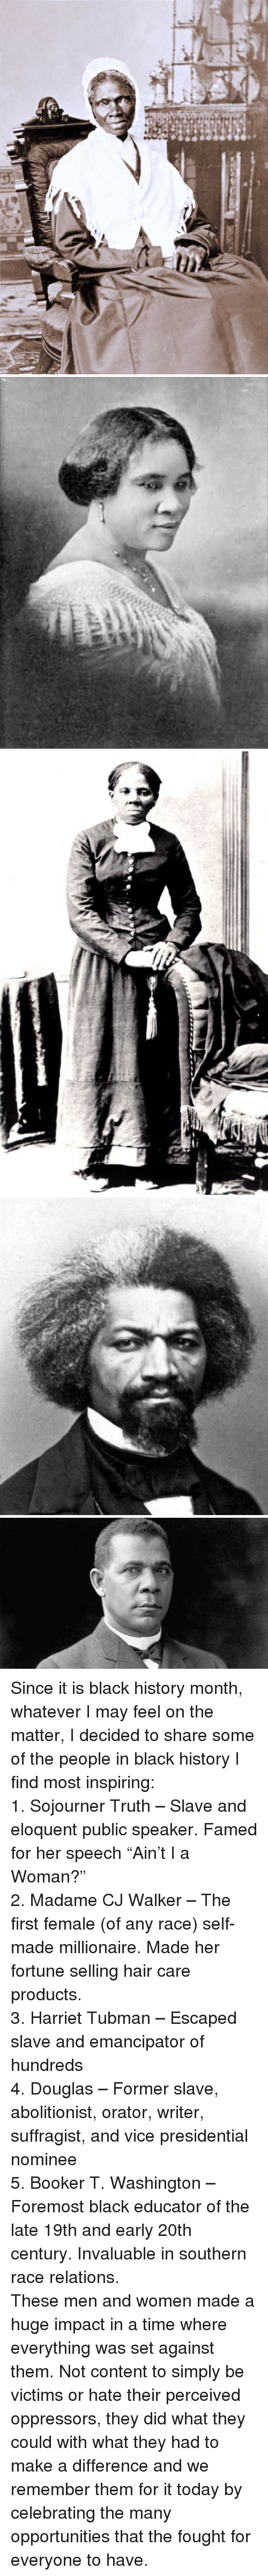 "Black History Month, Harriet Tubman, and Black: <p>Since it is black history month, whatever I may feel on the matter, I decided to share some of the people in black history I find most inspiring:<br/> 1. Sojourner Truth – Slave and eloquent public speaker. Famed for her speech ""Ain't I a Woman?""<br/> 2. Madame CJ Walker – The first female (of any race) self-made millionaire. Made her fortune selling hair care products.<br/> 3. Harriet Tubman – Escaped slave and emancipator of hundreds<br/> 4. Douglas – Former slave, abolitionist, orator, writer, suffragist, and vice presidential nominee<br/> 5. Booker T. Washington – Foremost black educator of the late 19th and early 20th century. Invaluable in southern race relations.</p>  <p>These men and women made a huge impact in a time where everything was set against them. Not content to simply be victims or hate their perceived oppressors, they did what they could with what they had to make a difference and we remember them for it today by celebrating the many opportunities that the fought for everyone to have.</p>"